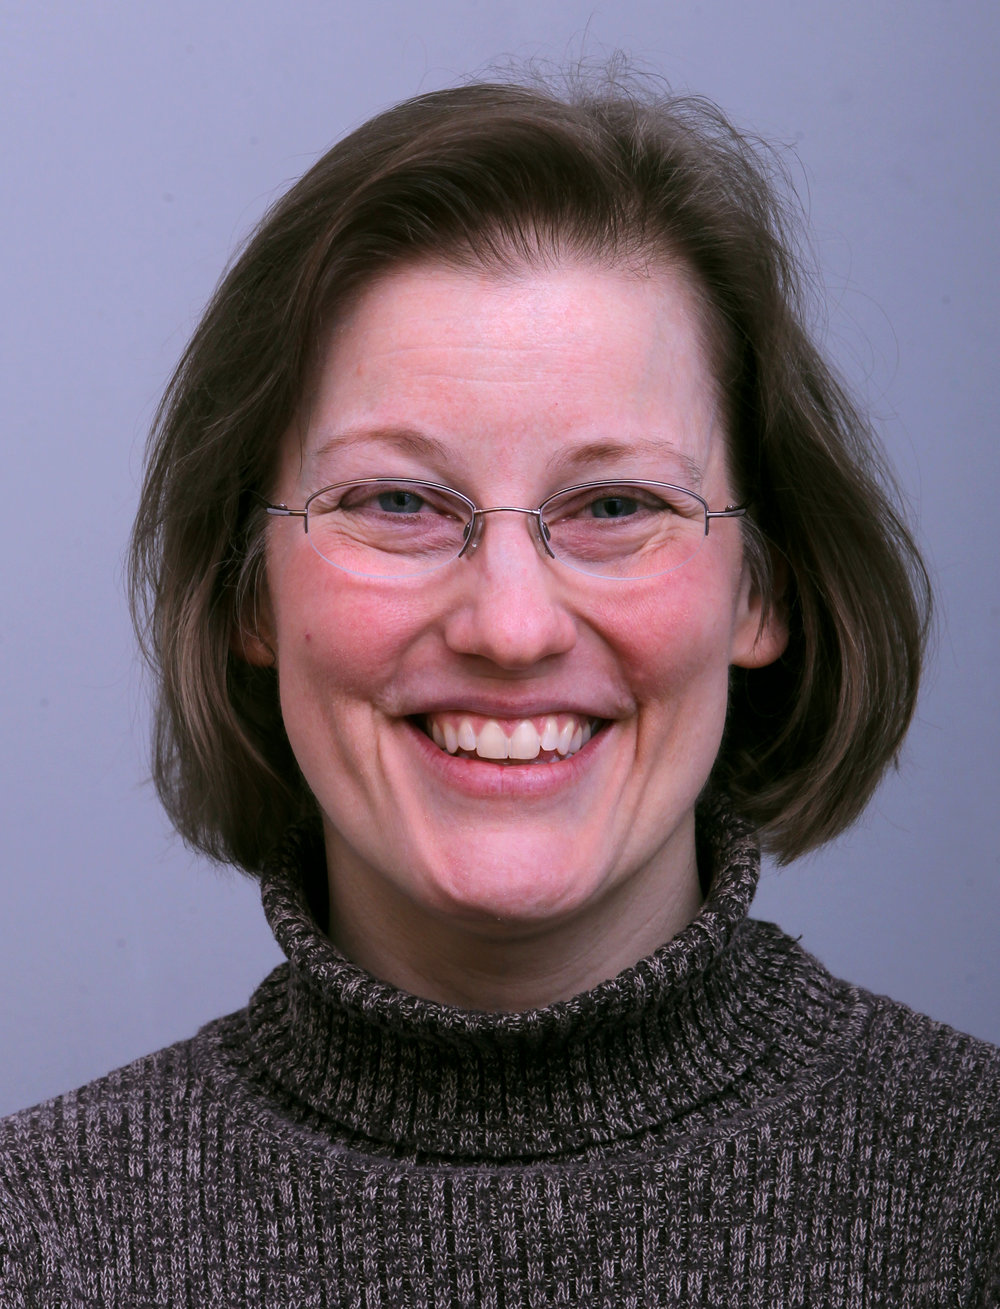 DEBBIE COCKRELL - Reporter at The News Tribune in Tacoma